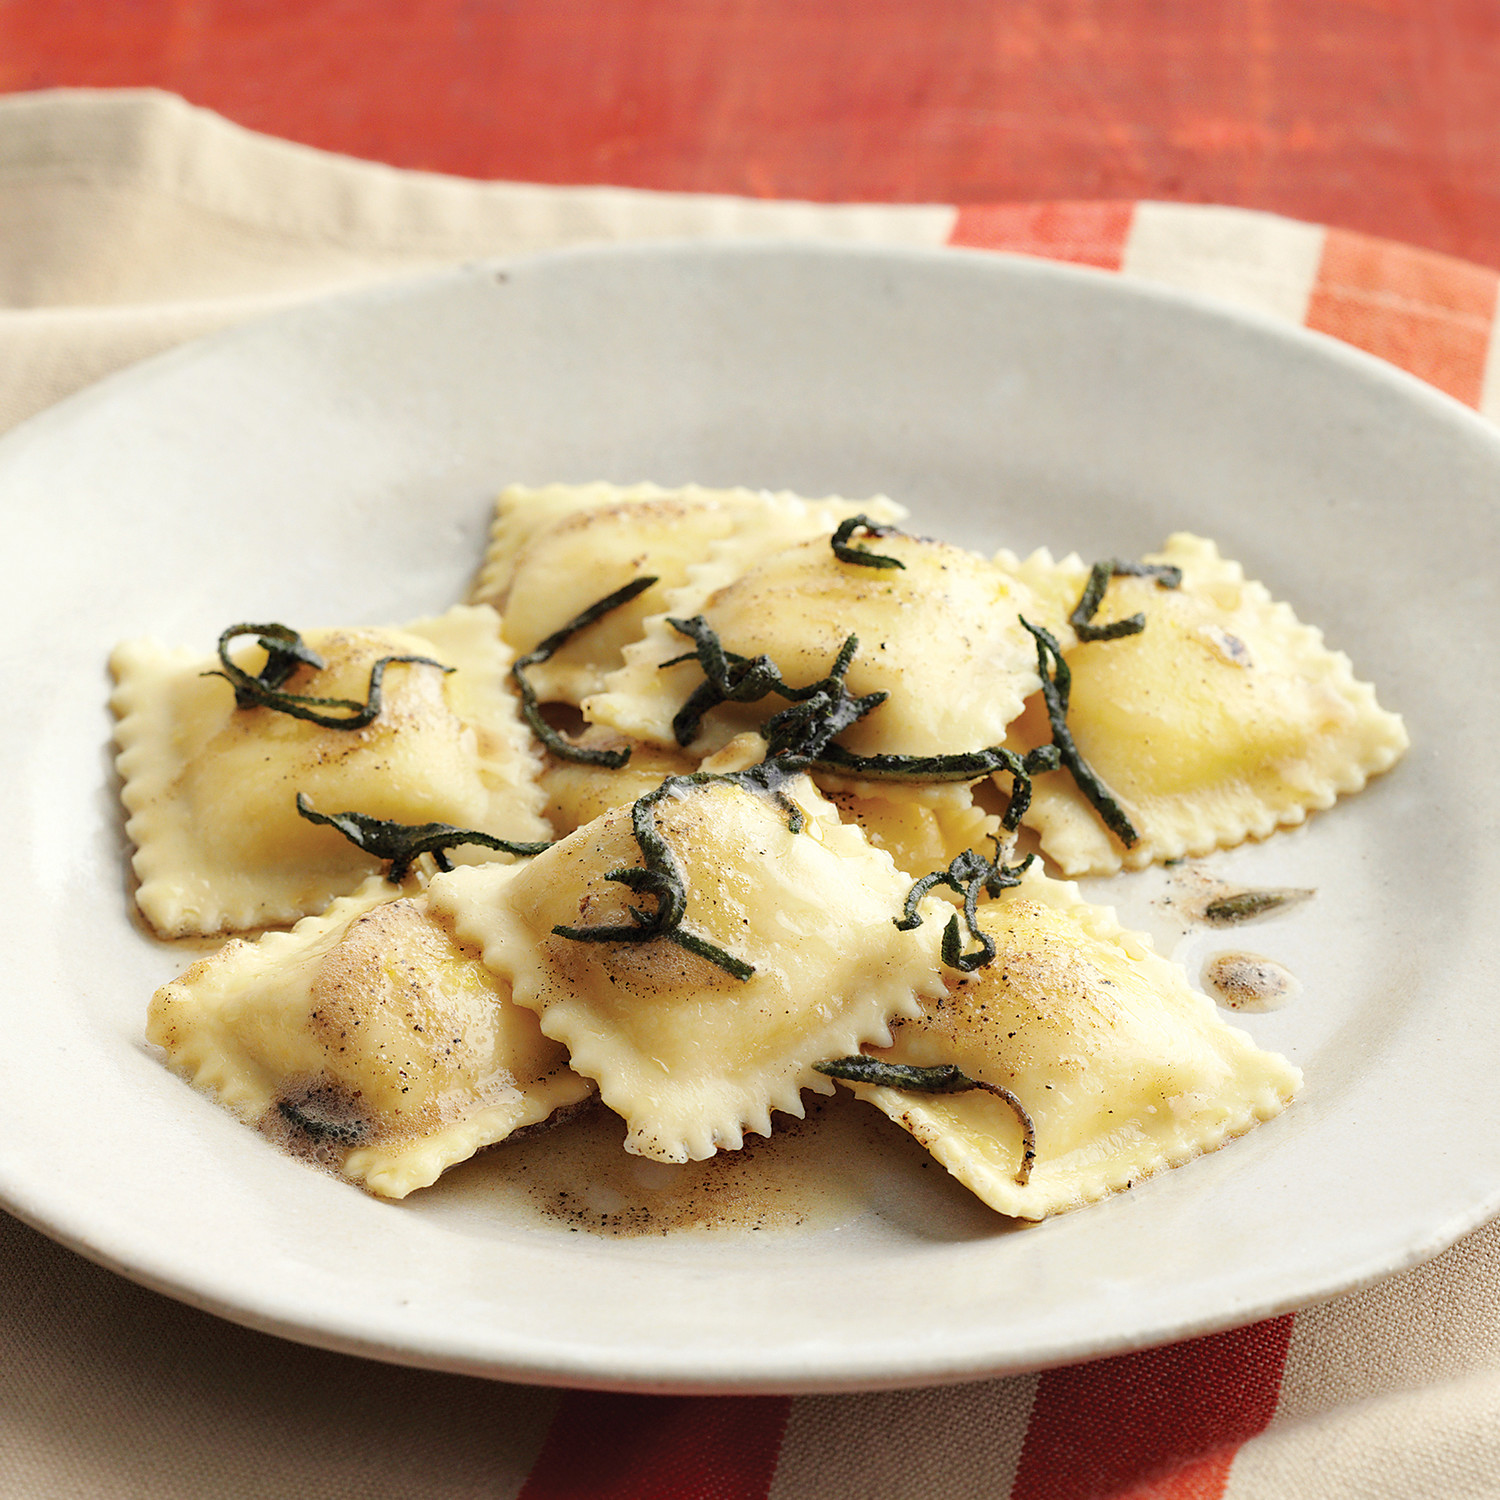 Shower Bath Images Cheese Ravioli With Brown Butter And Sage